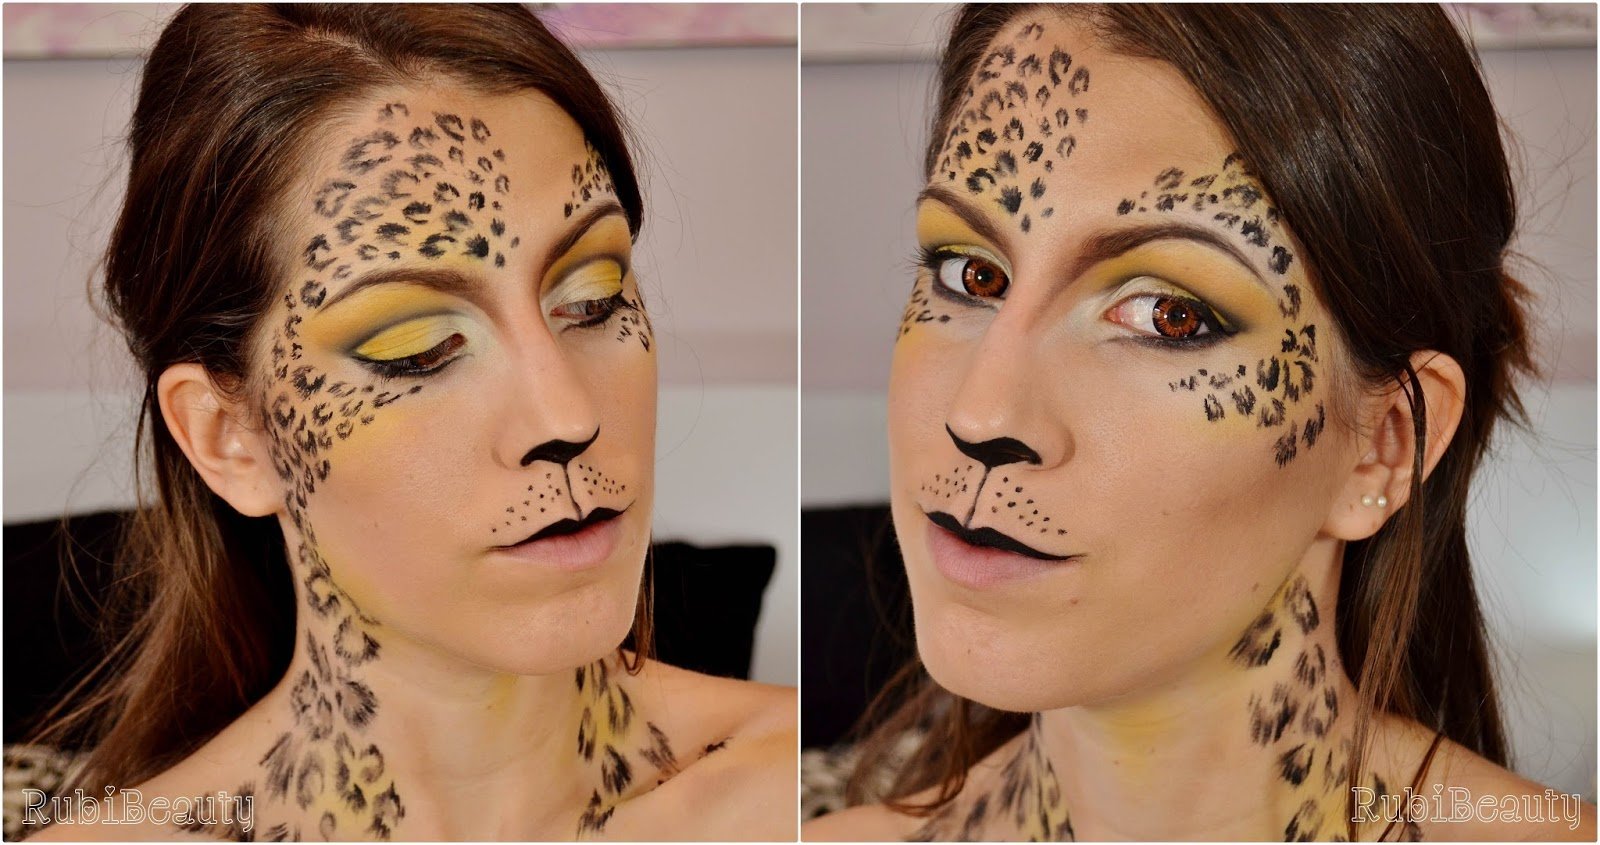 rubibeauty facepaint tutorial maquillaje makeup animal print leopard leopardo